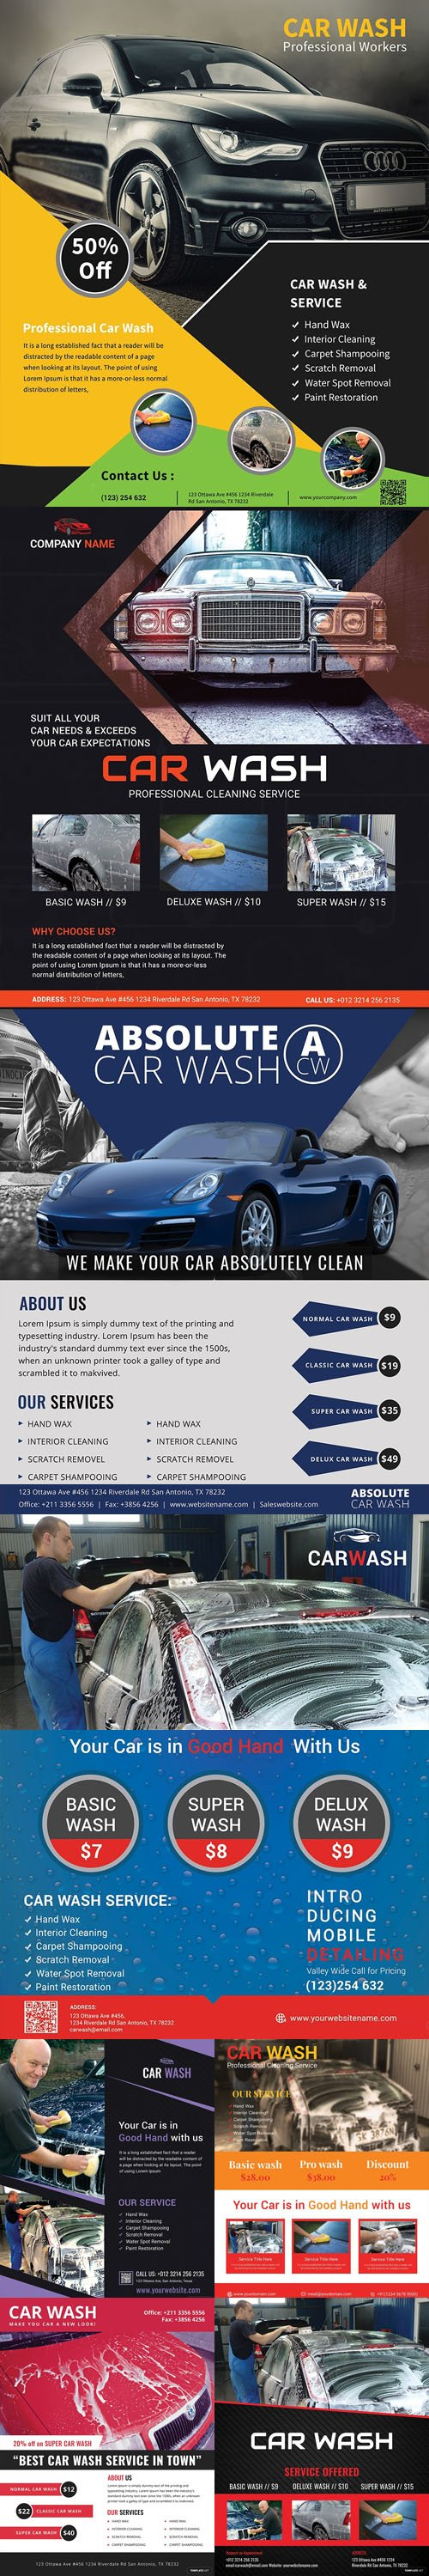 Car Wash Service Flyer Templates Collection